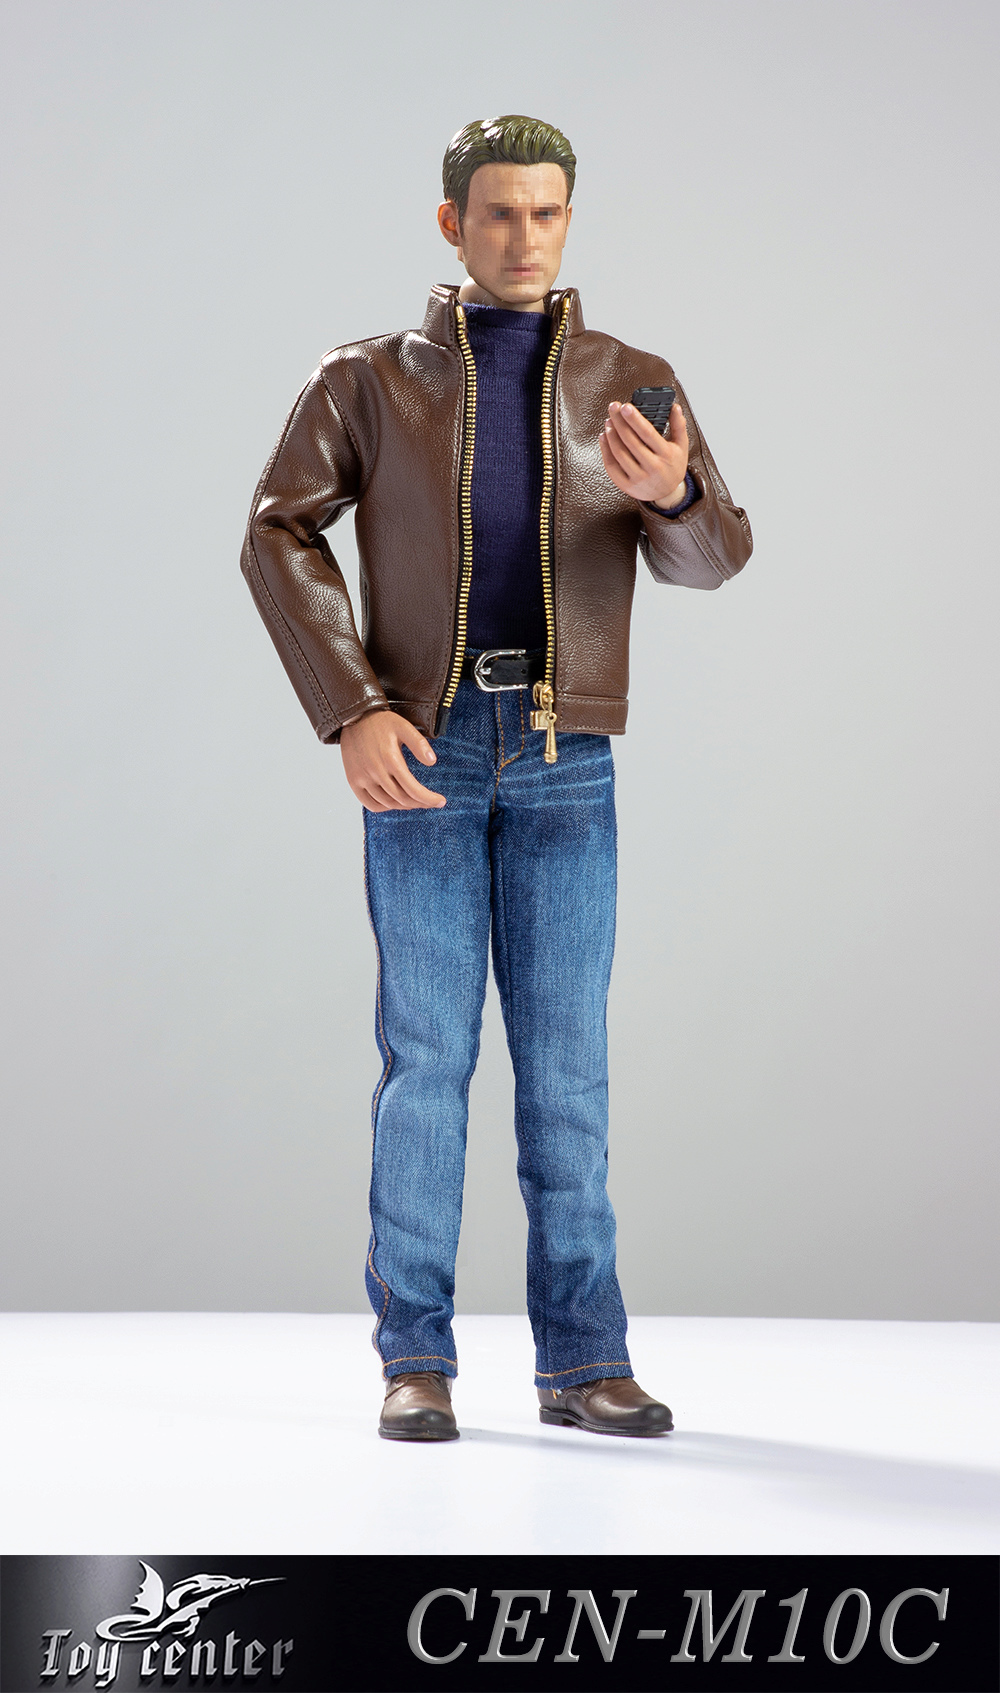 clothes - NEW PRODUCT: Toy center: 1/6 US team trend leather suit - a total of three colors A / B / C (CEN-M10 #) 13143510